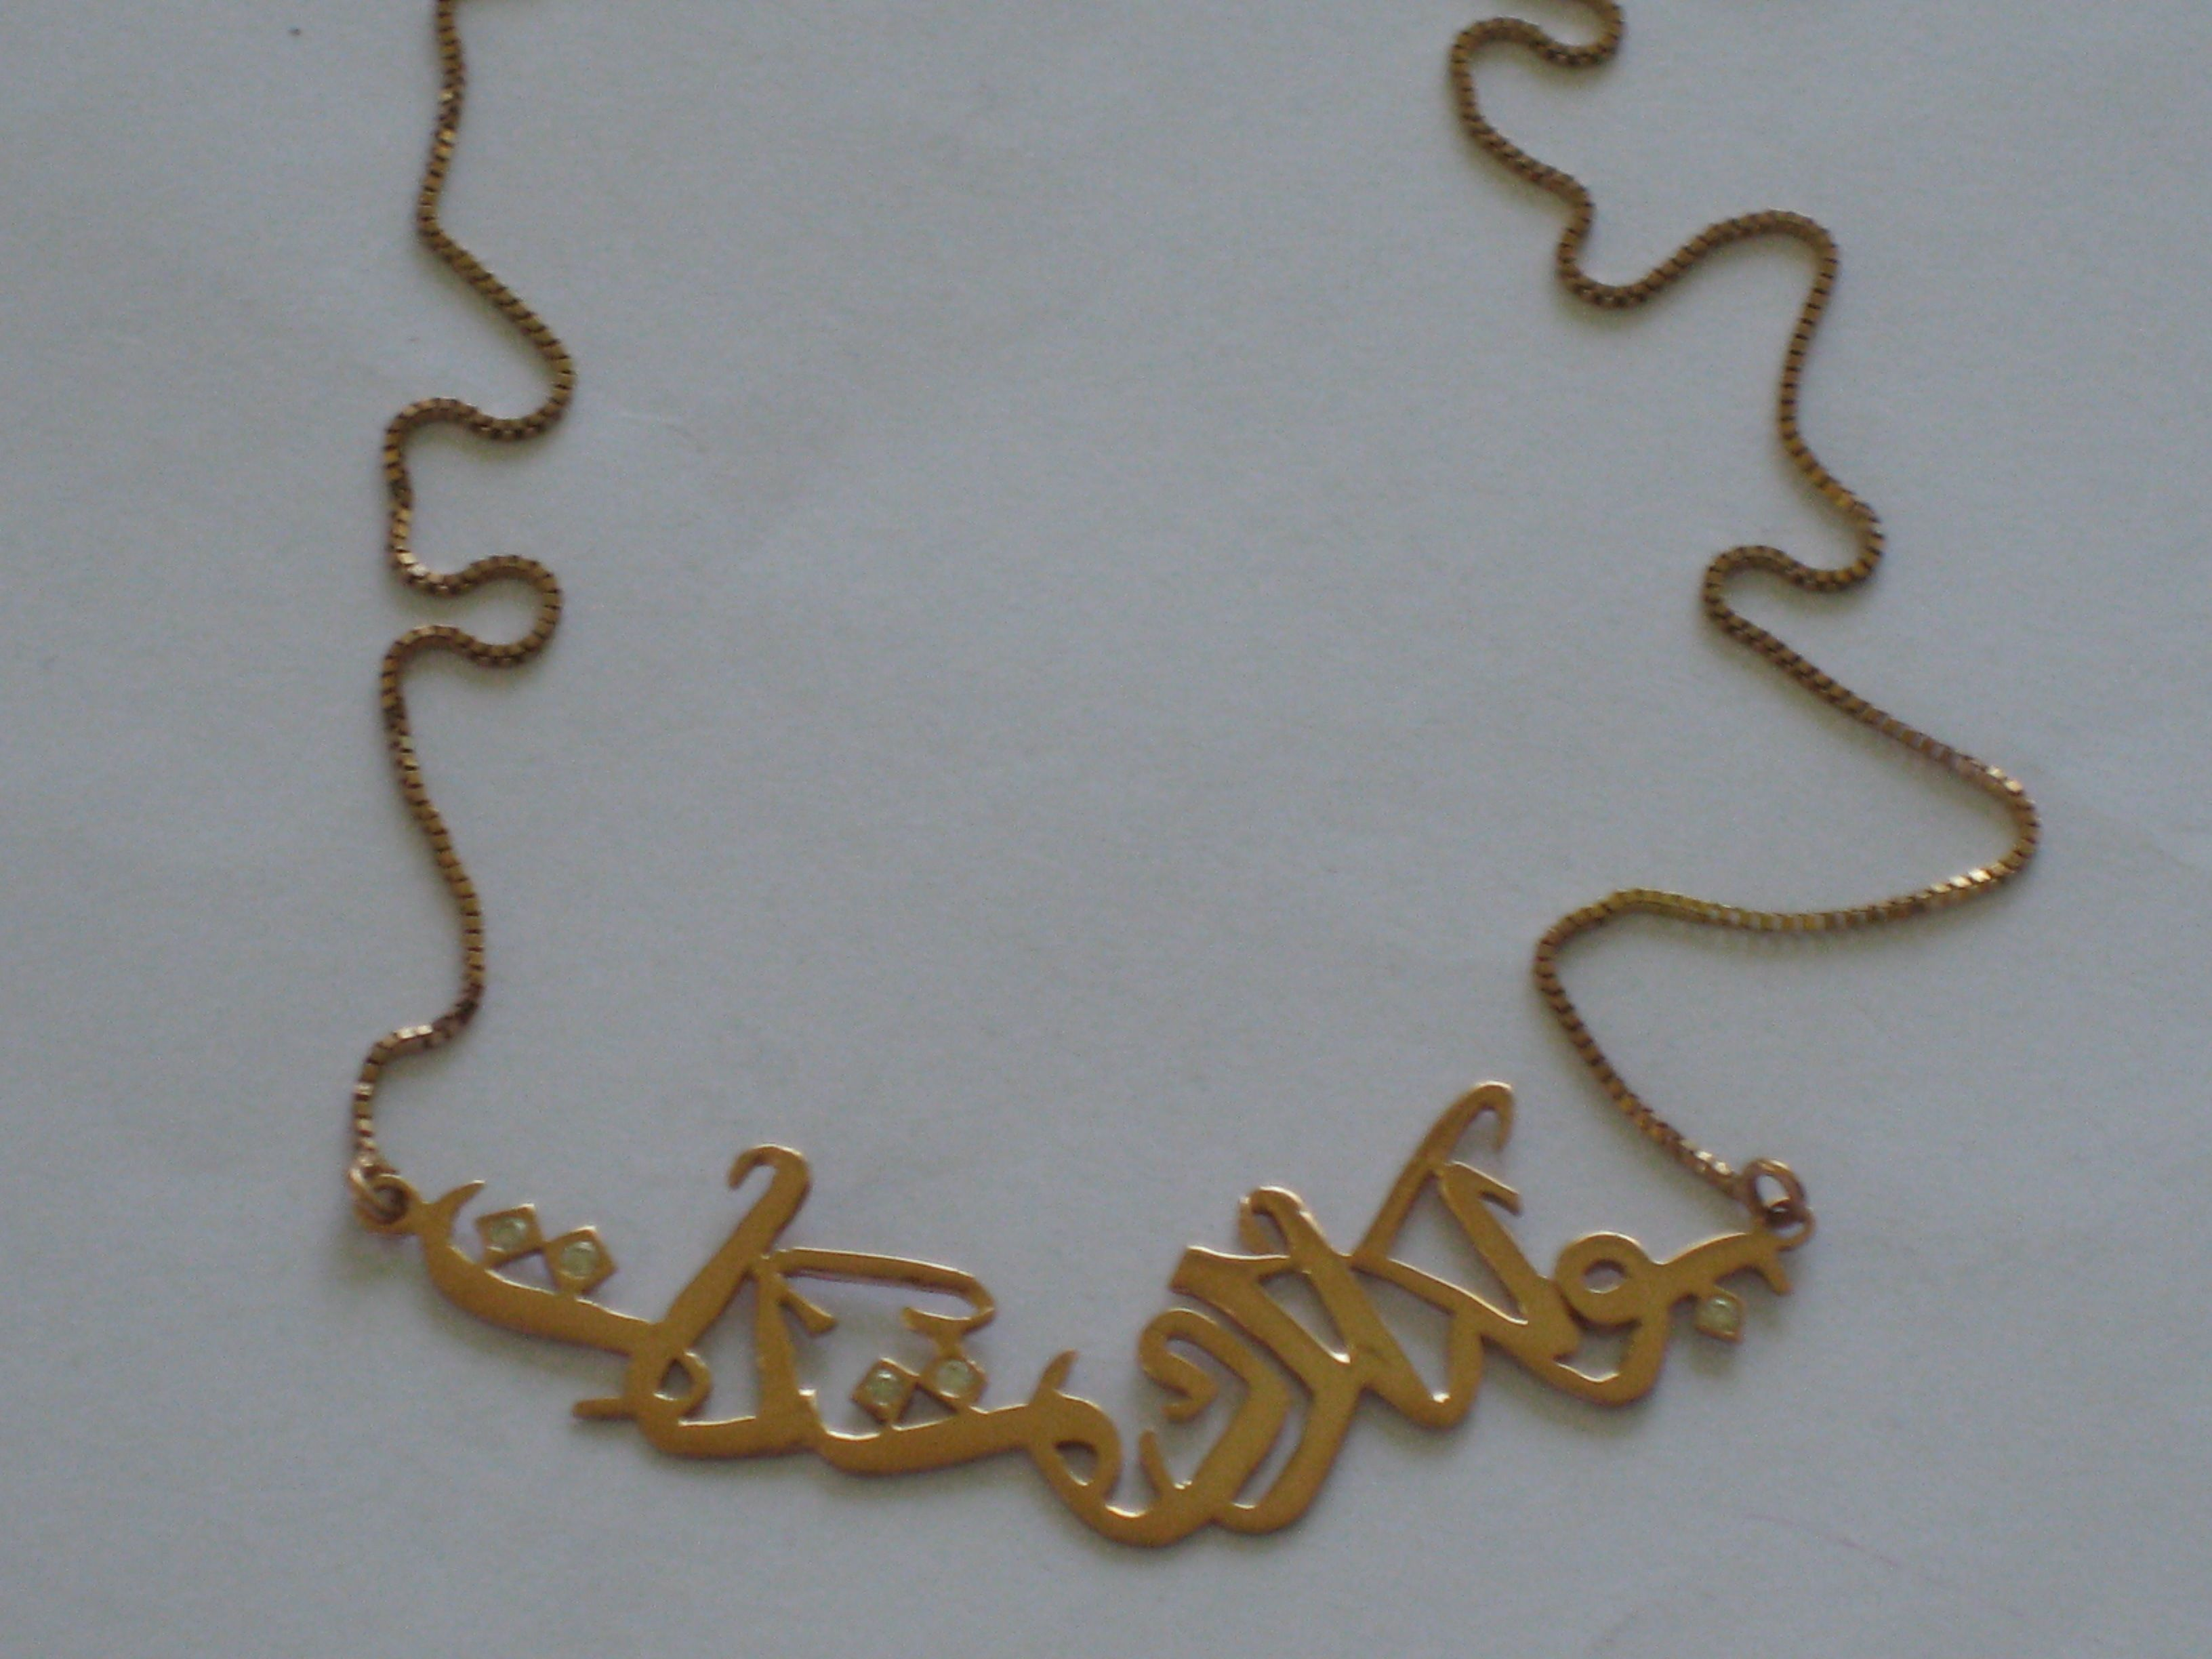 special design necklace necklacess chains necklaces gold name abby heart the